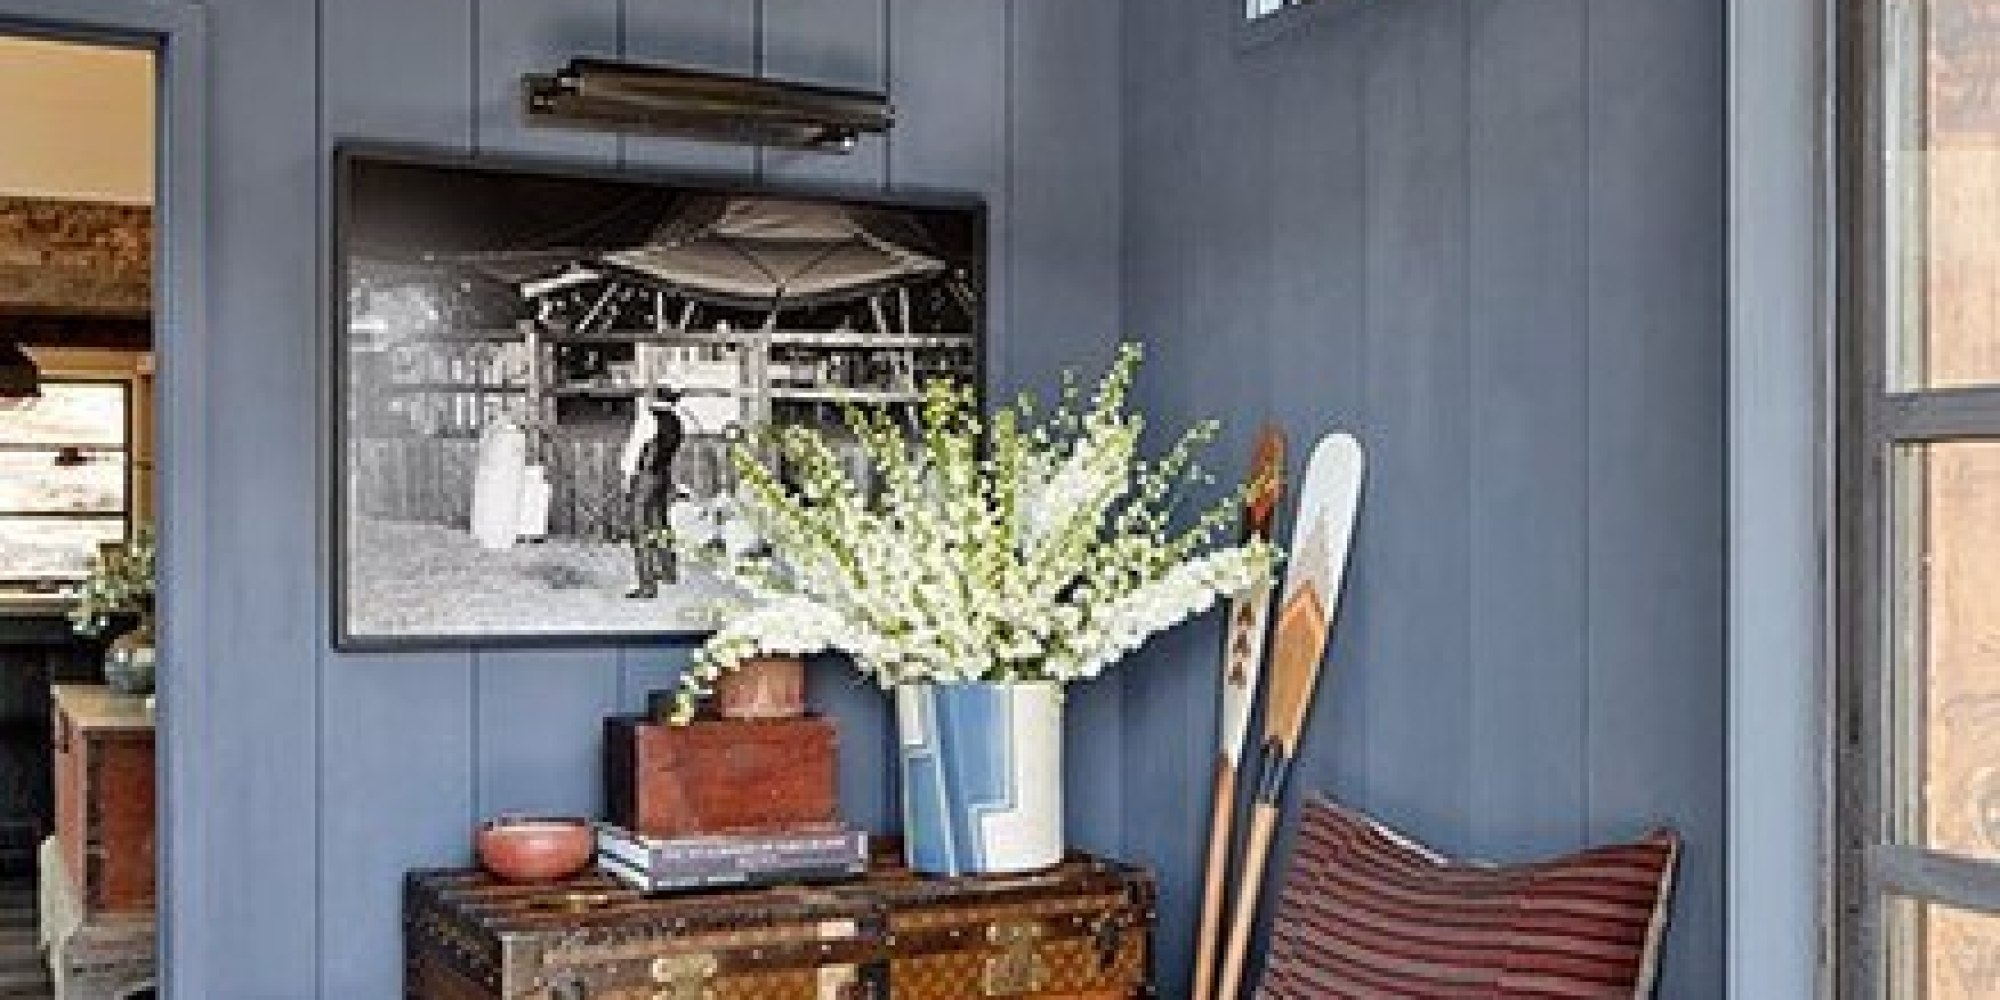 Of Course Blake Mycoskie The Founder TOMS Has A Gorgeous Perfectly Rustic House